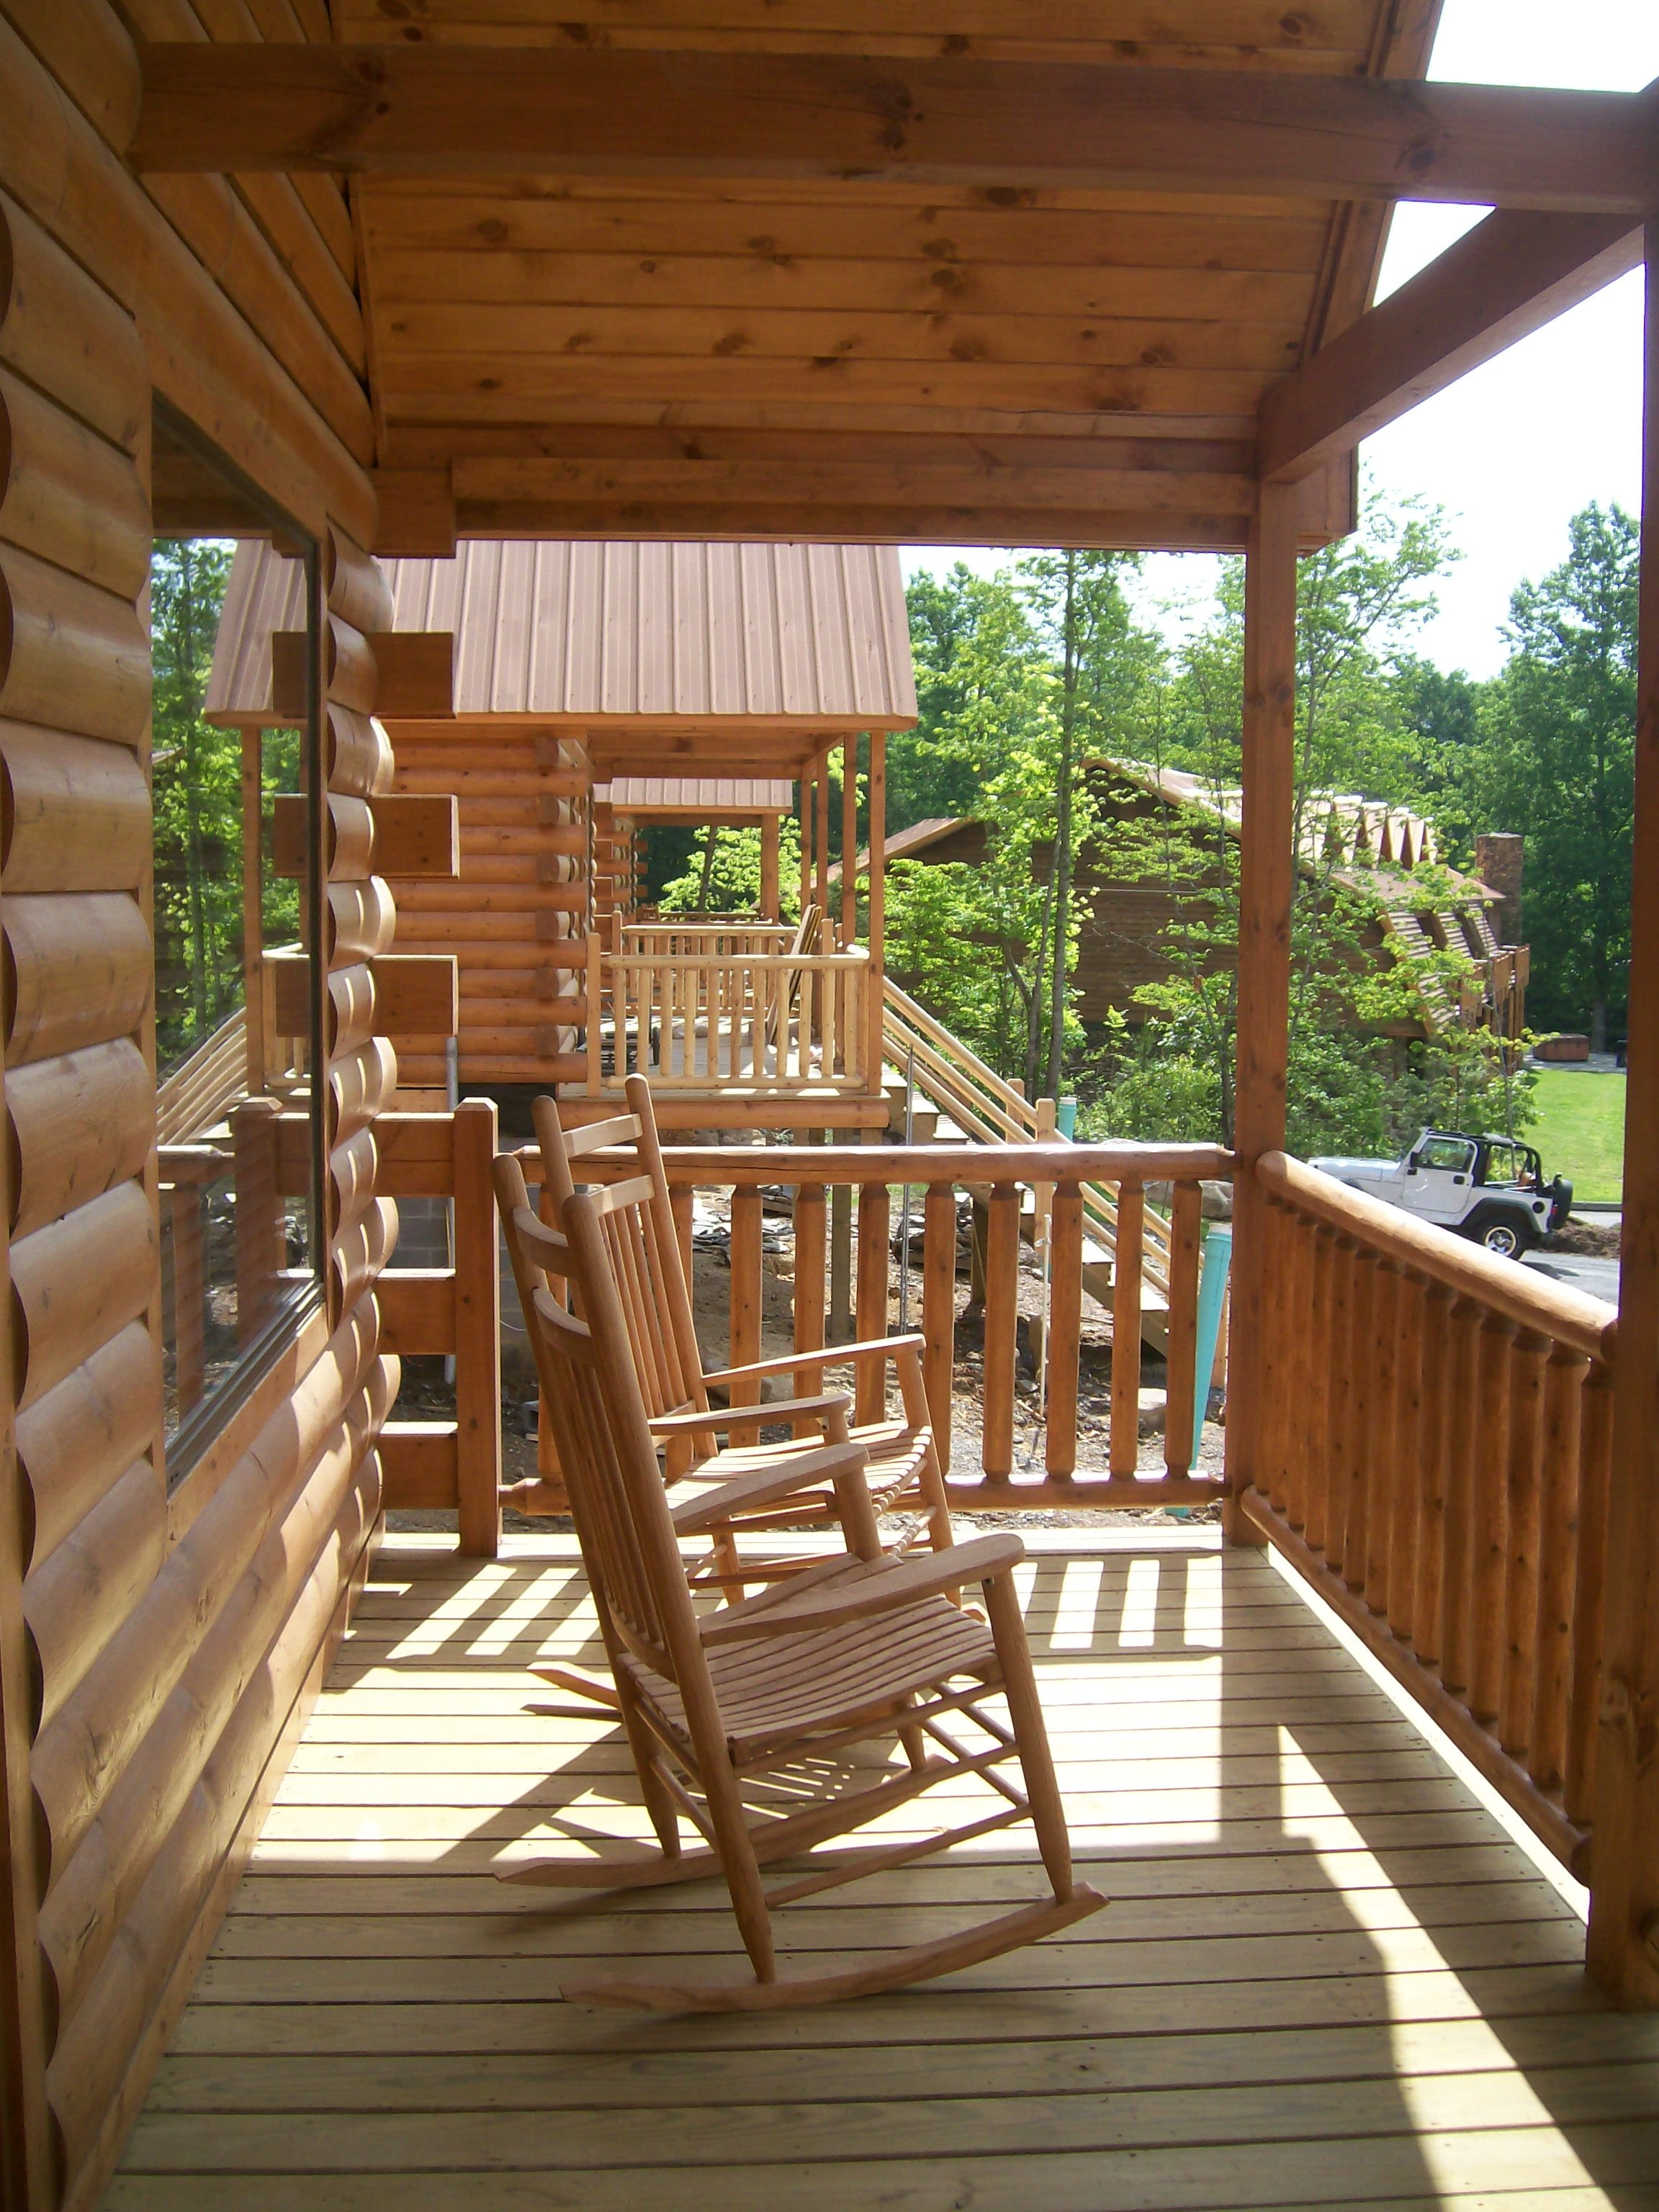 honeymoon tennessee one pigeon original cabin forge rentals skyharbor gatlinburg pet secluded bedroom friendly cabins